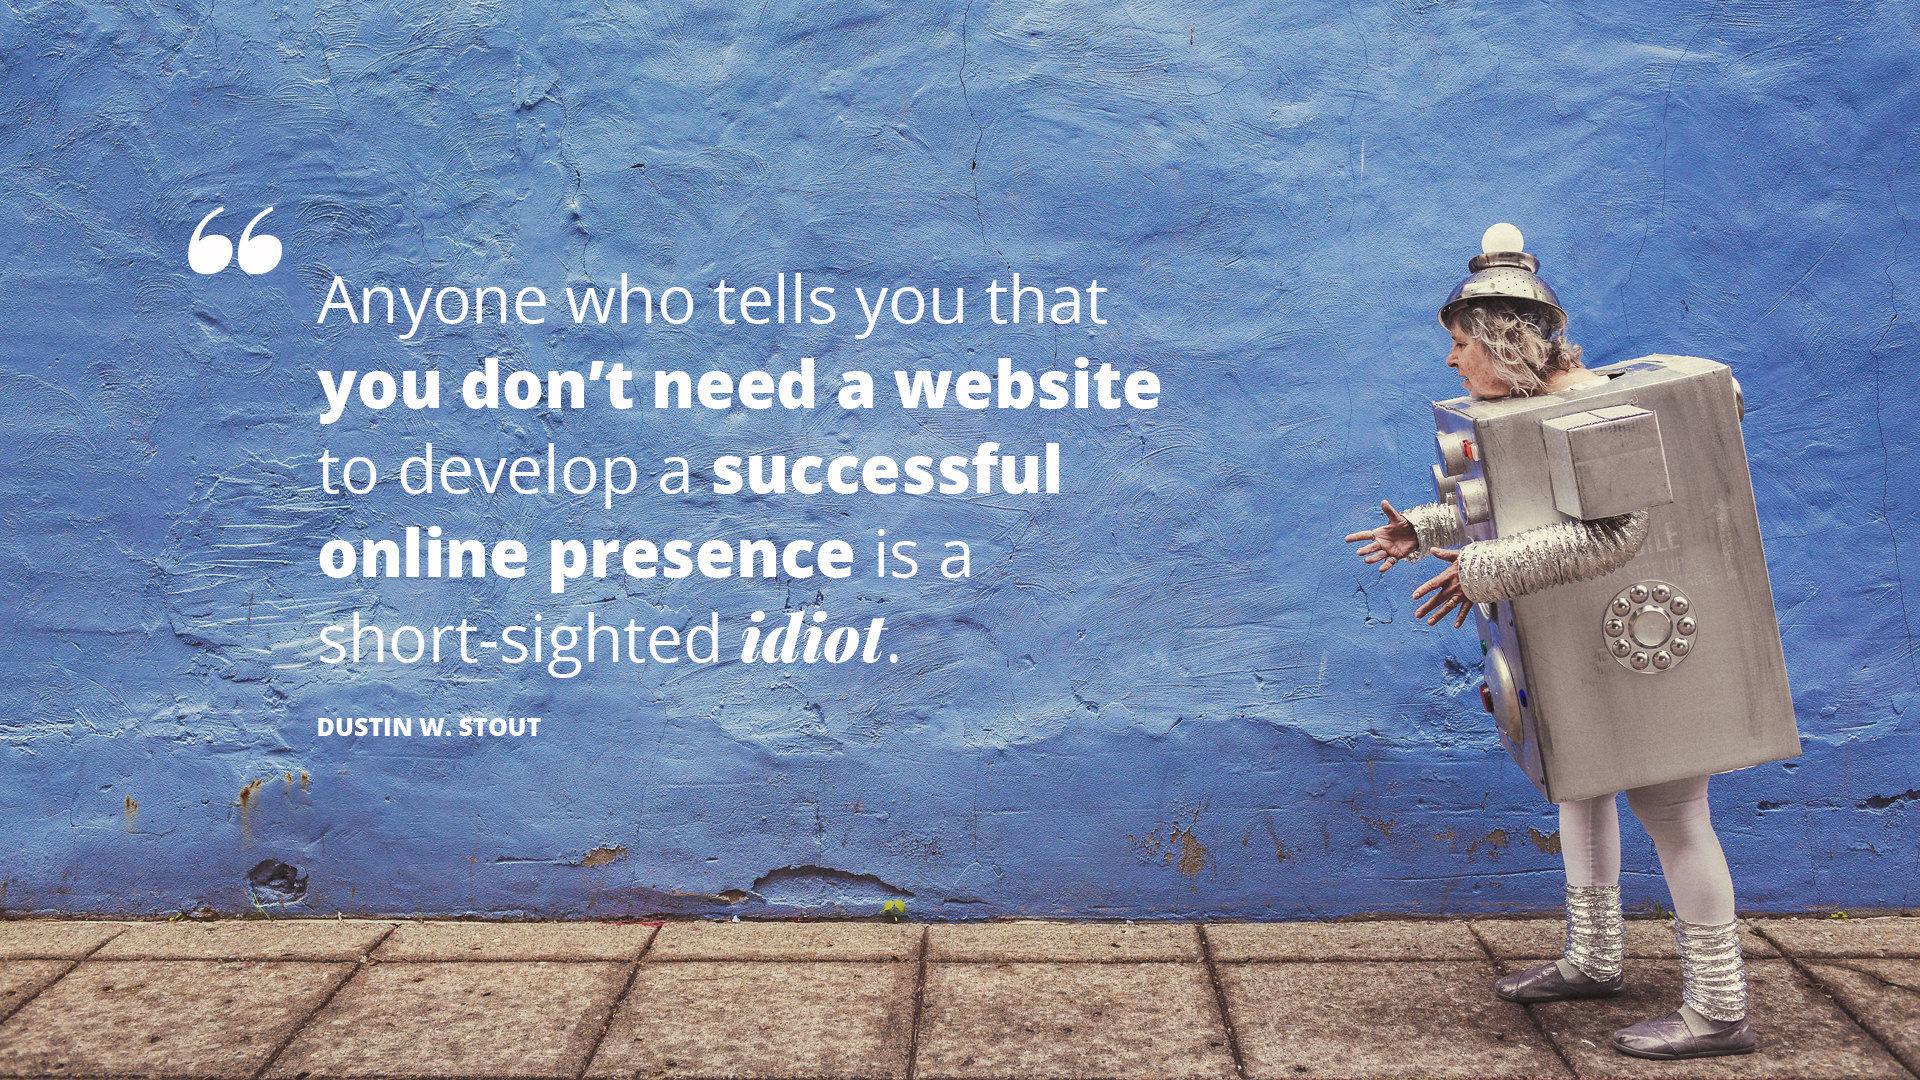 biggest social media mistake quote